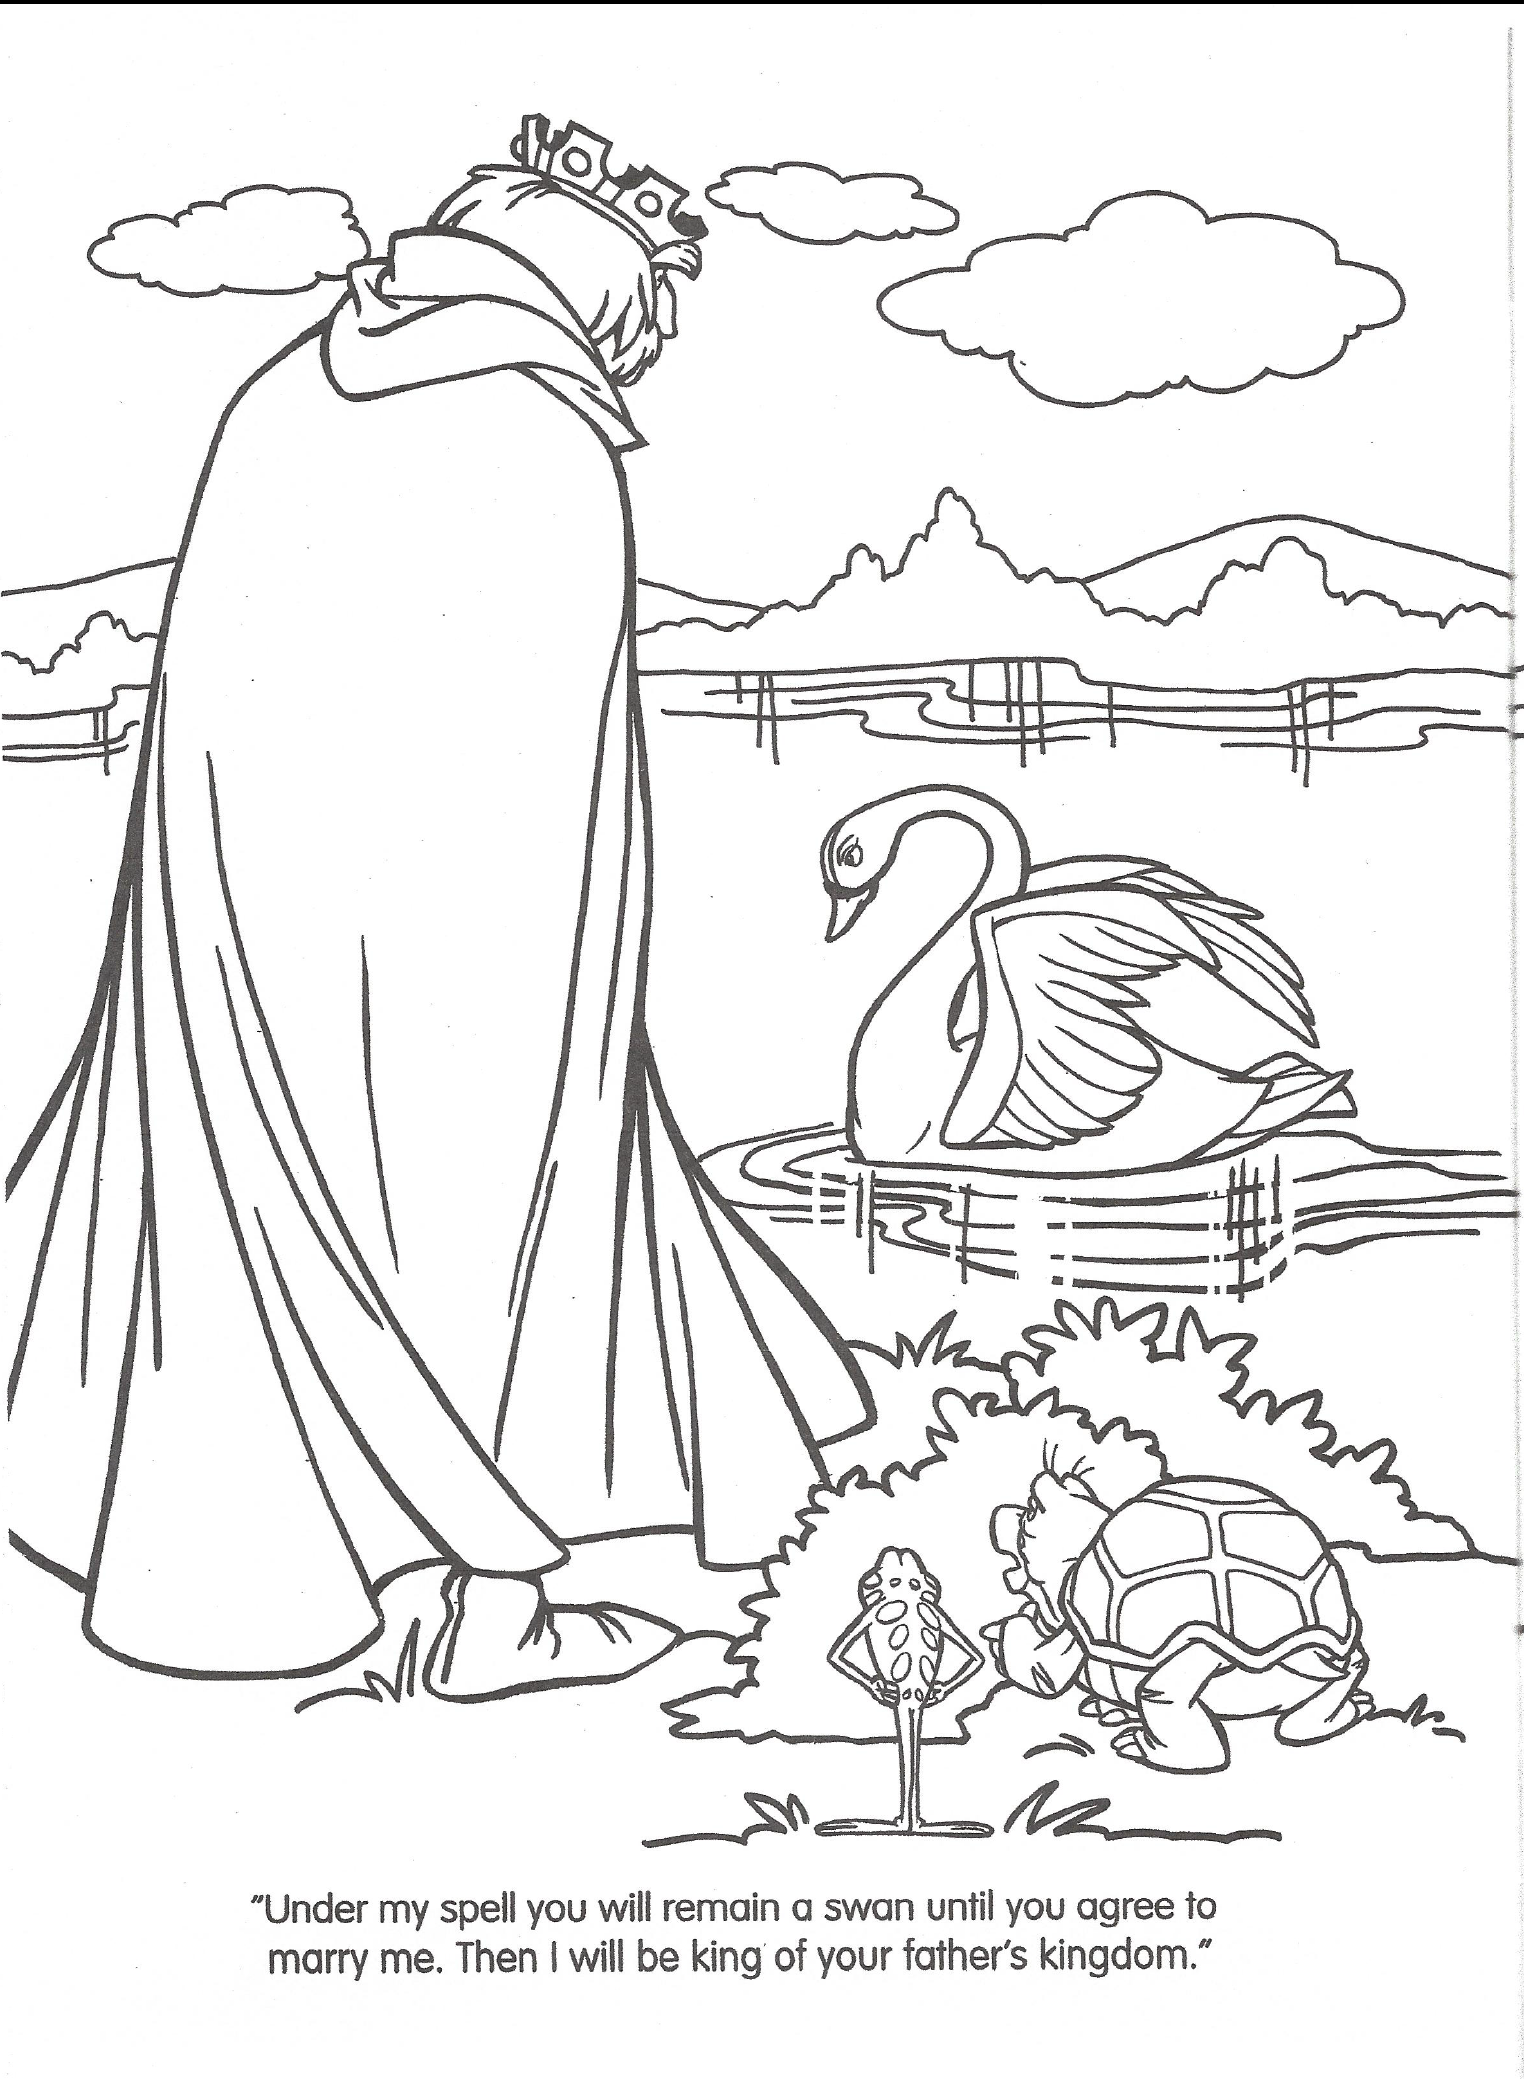 image swan princess official coloring page 11 png richard rich